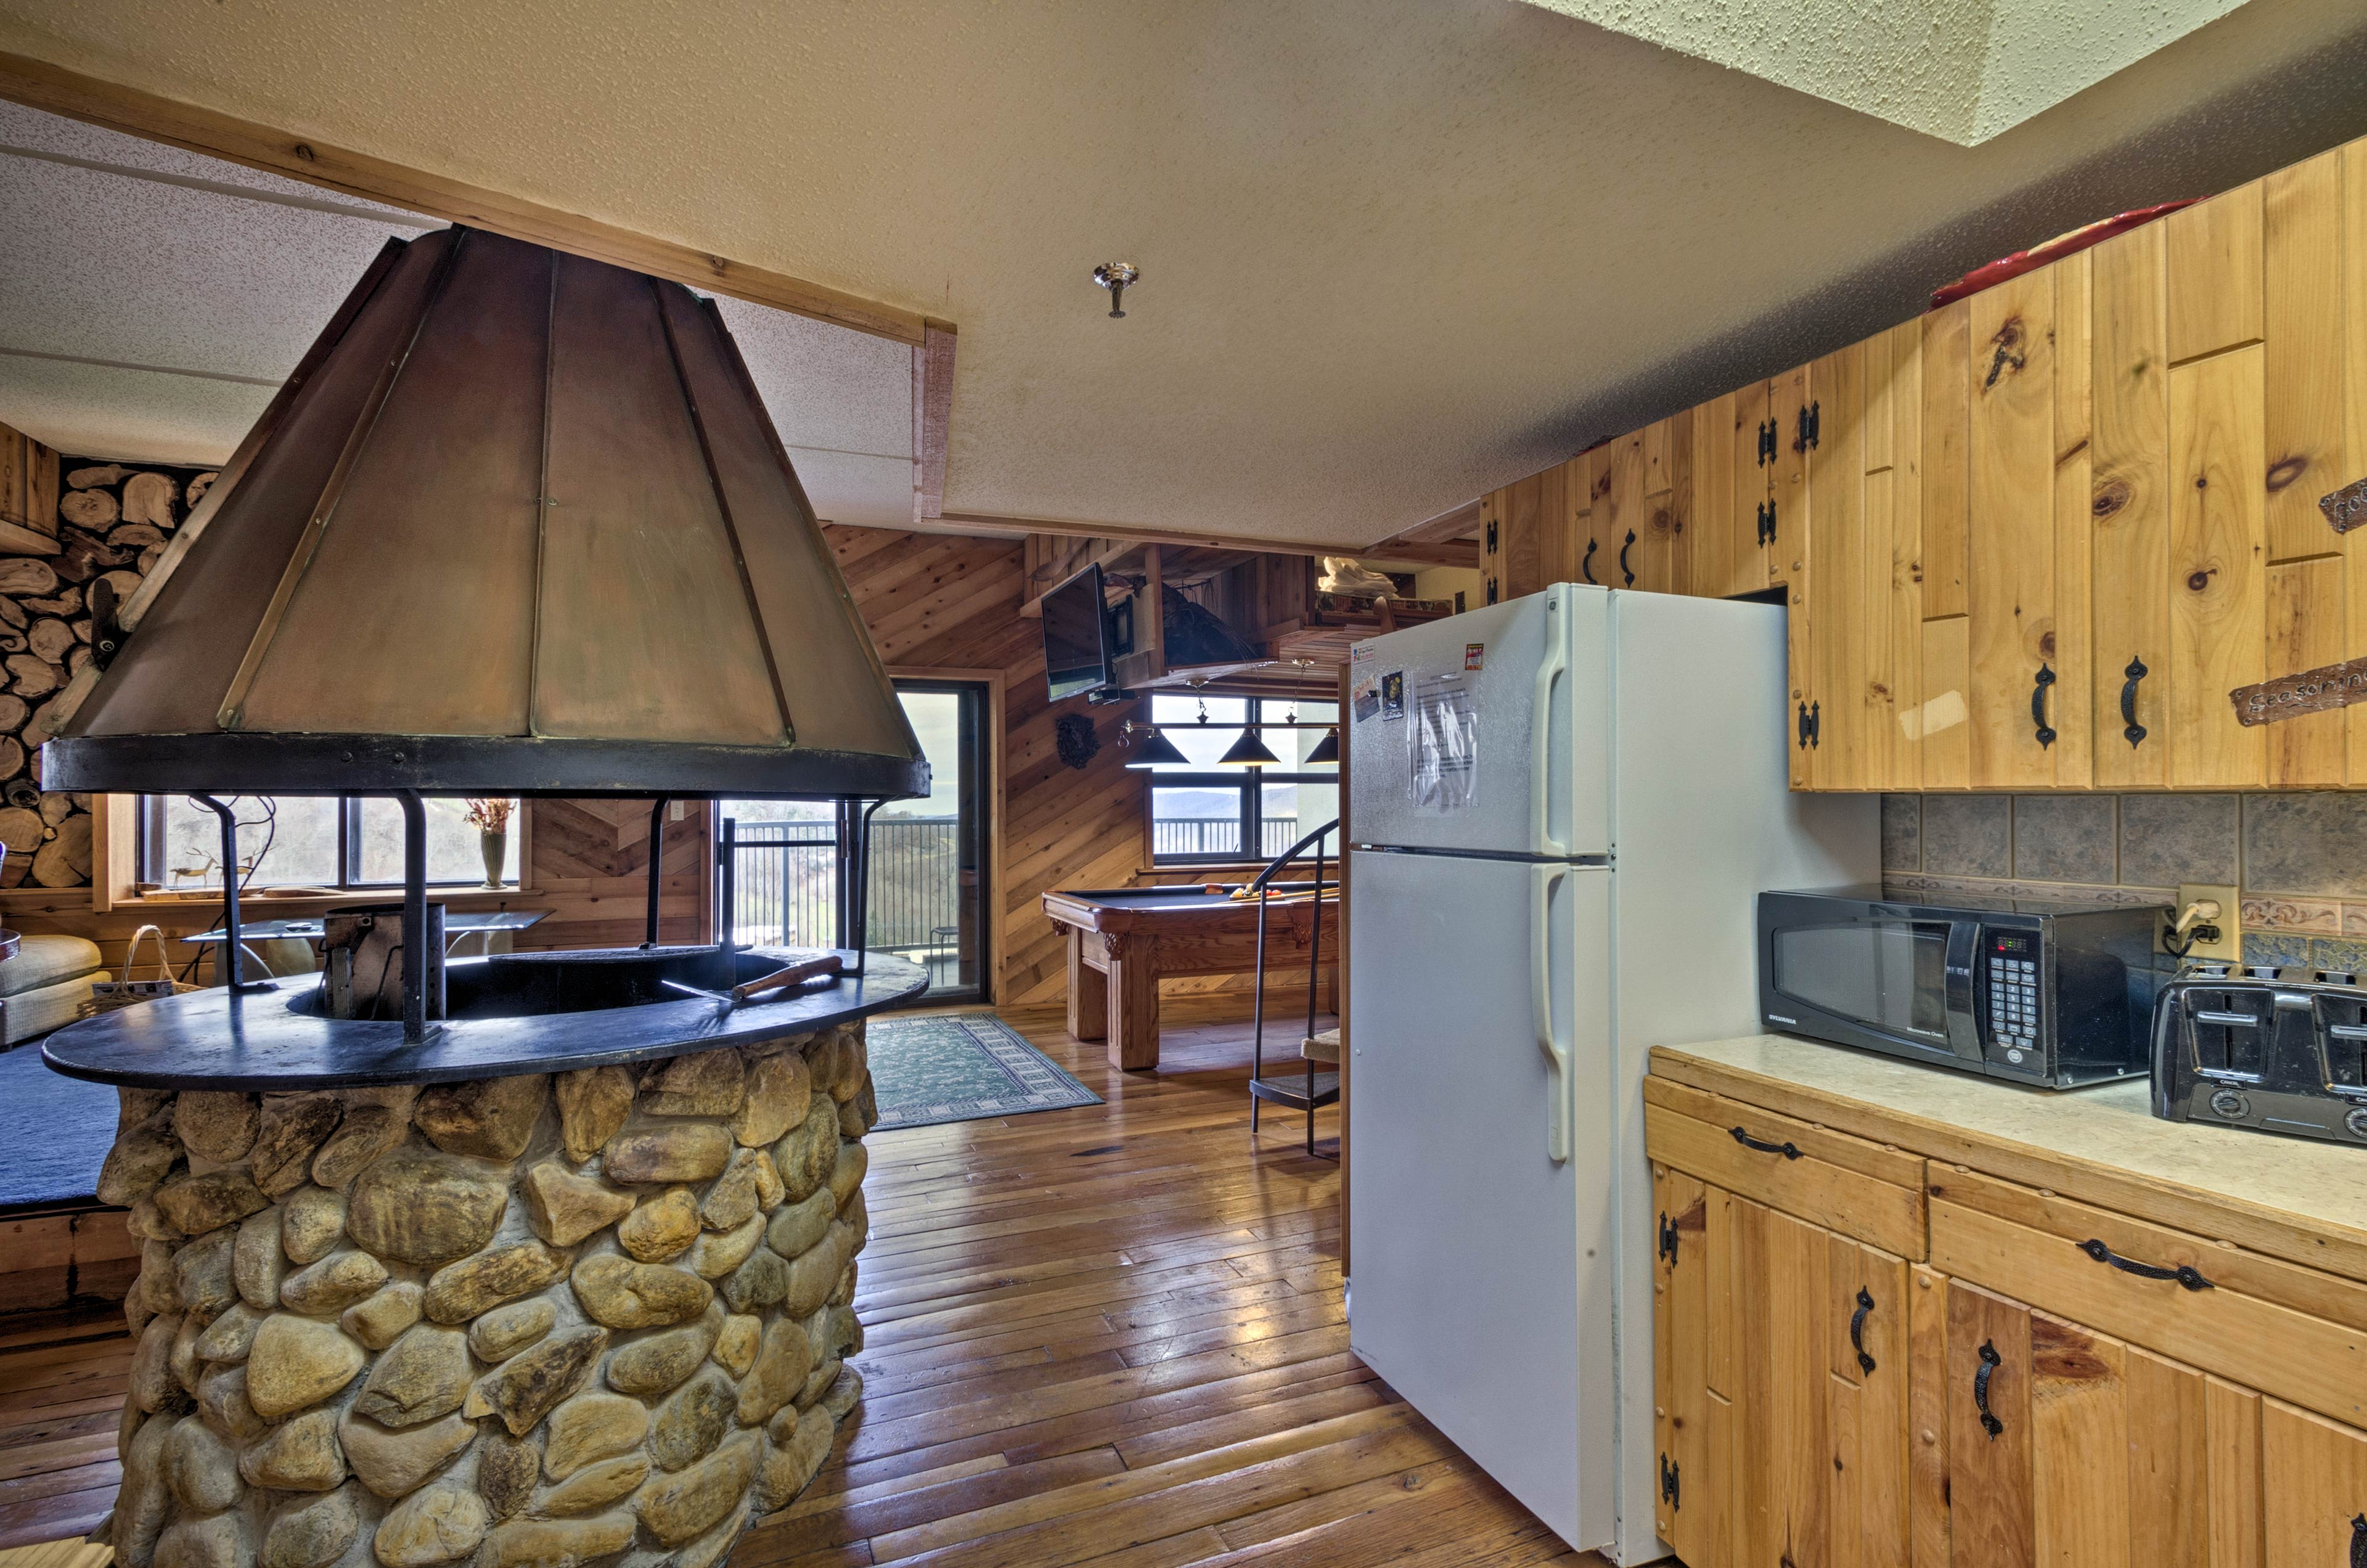 The kitchen is fully equipped to handle all of your needs.